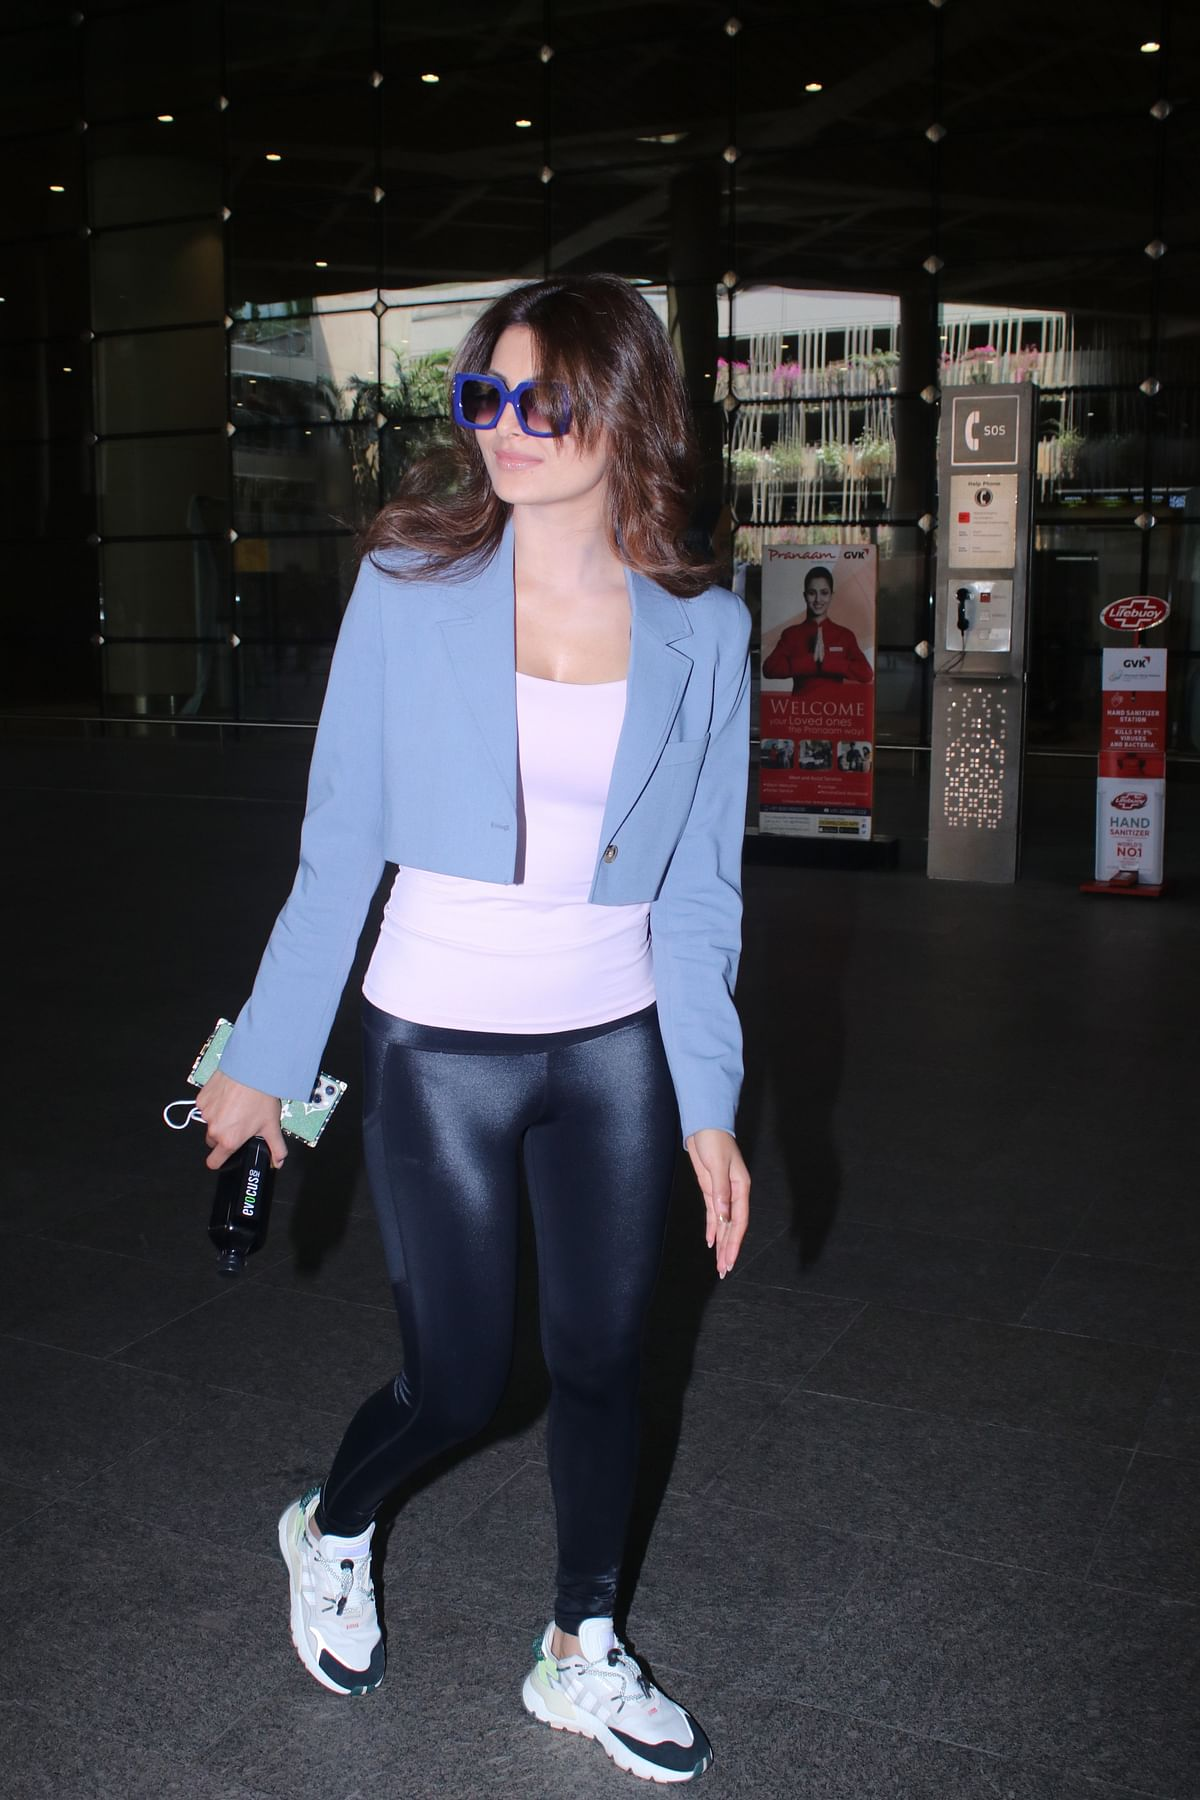 Did you know? Urvashi Rautela drinks this expensive black alkaline water which costs Rs 4,000 per litre